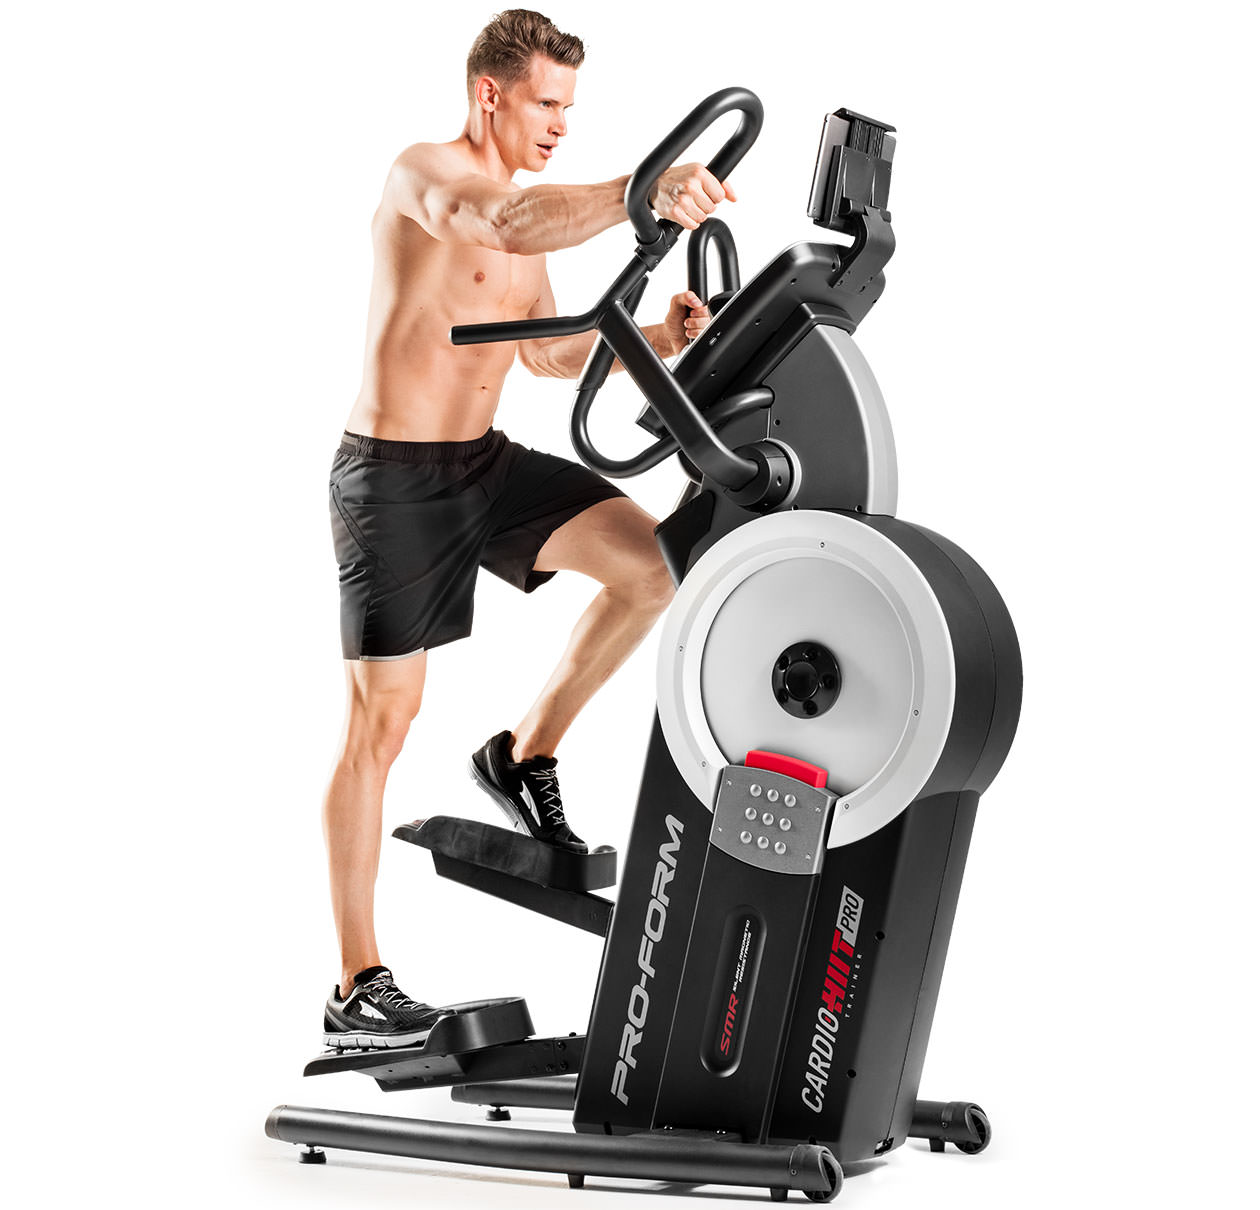 Proform HIIT Trainer Pro gallery image 3